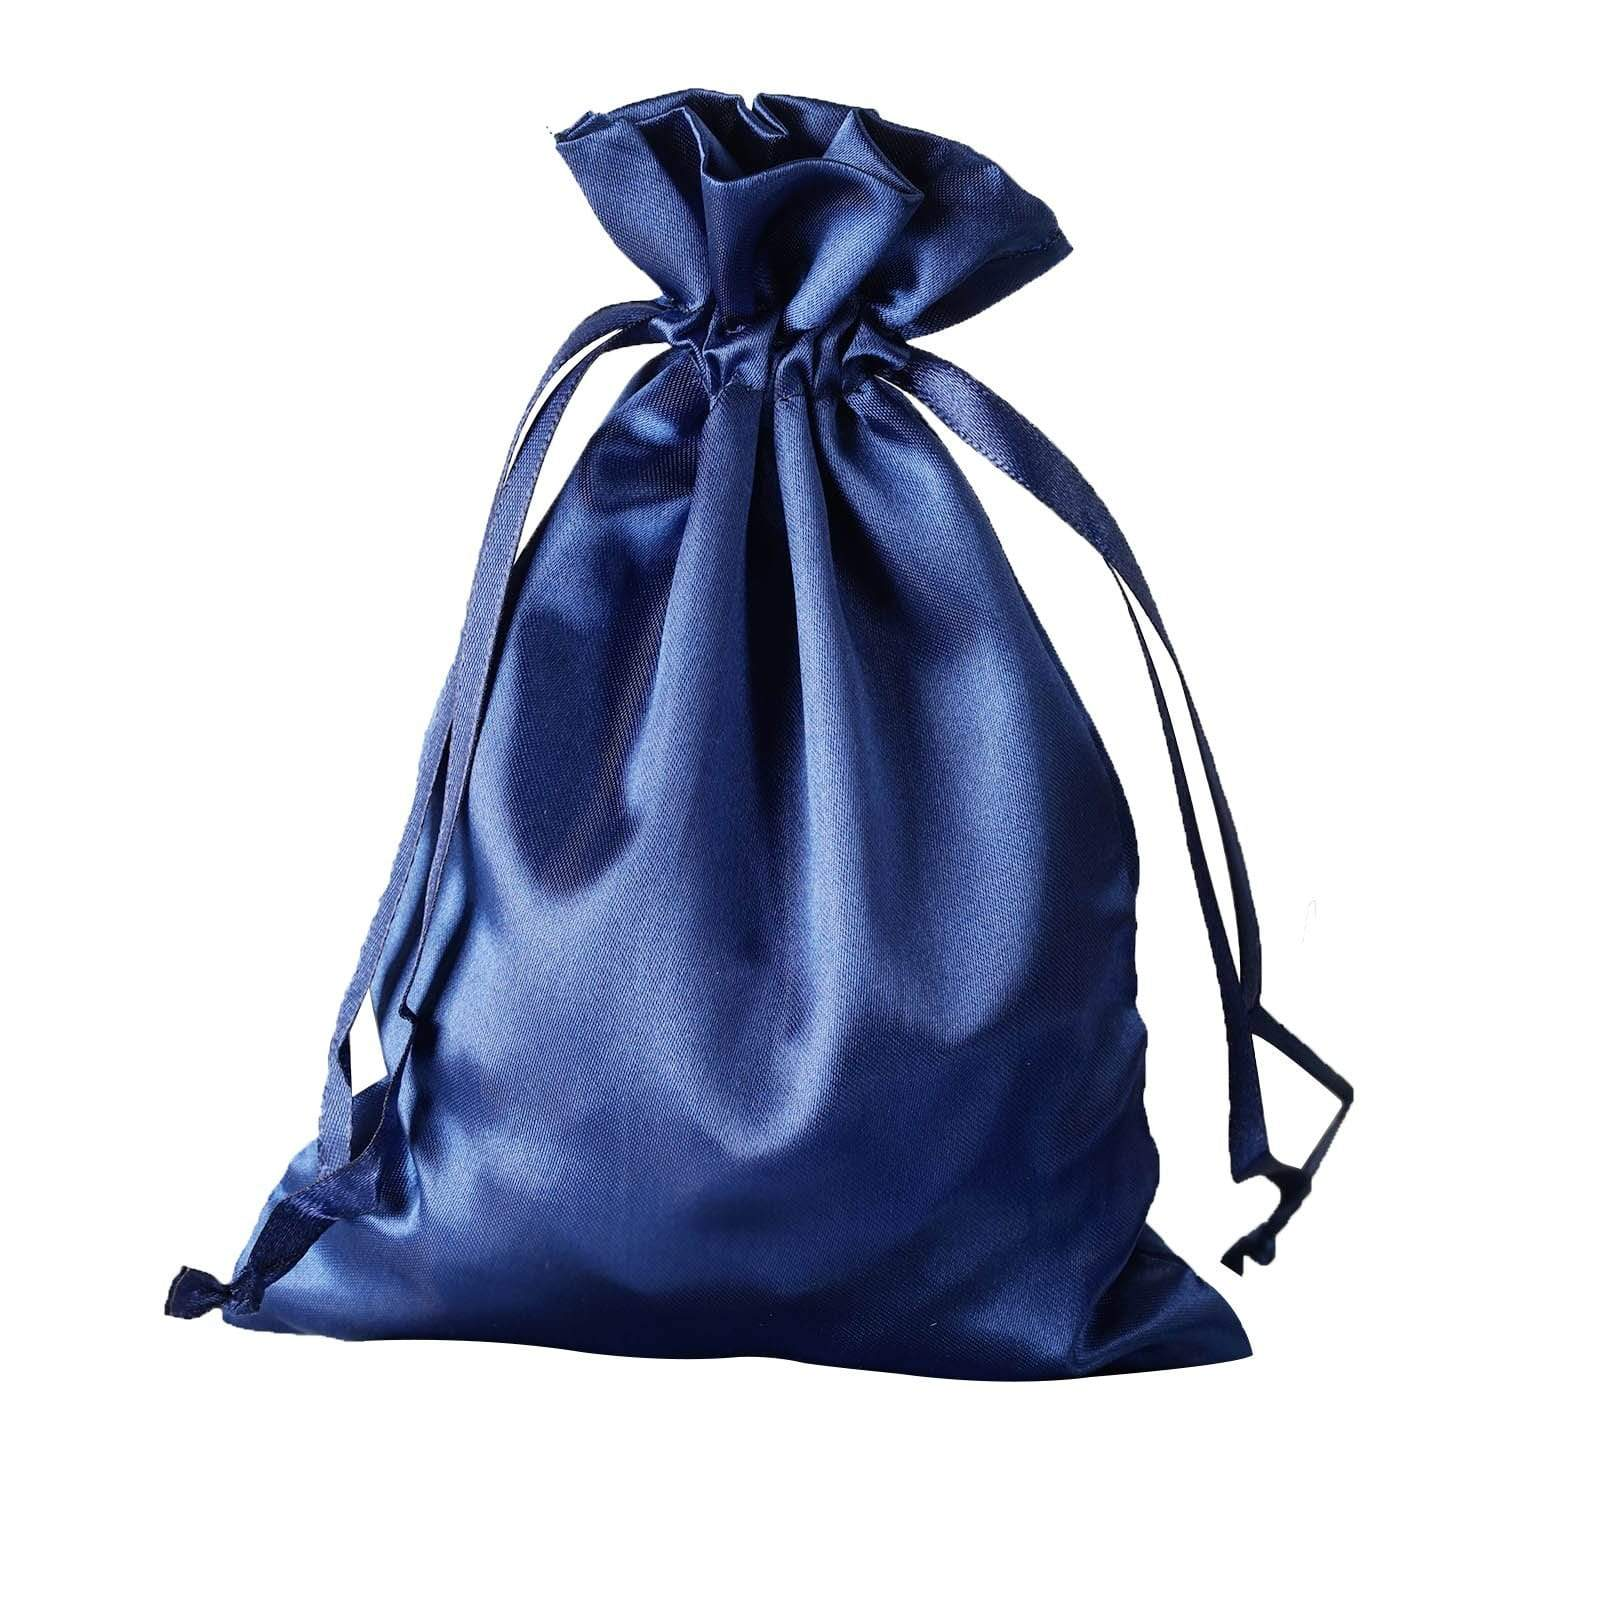 "12 pcs 5x7"" Satin Bags with Pull String - Navy Blue BAG_SB_5X7_NAVY"